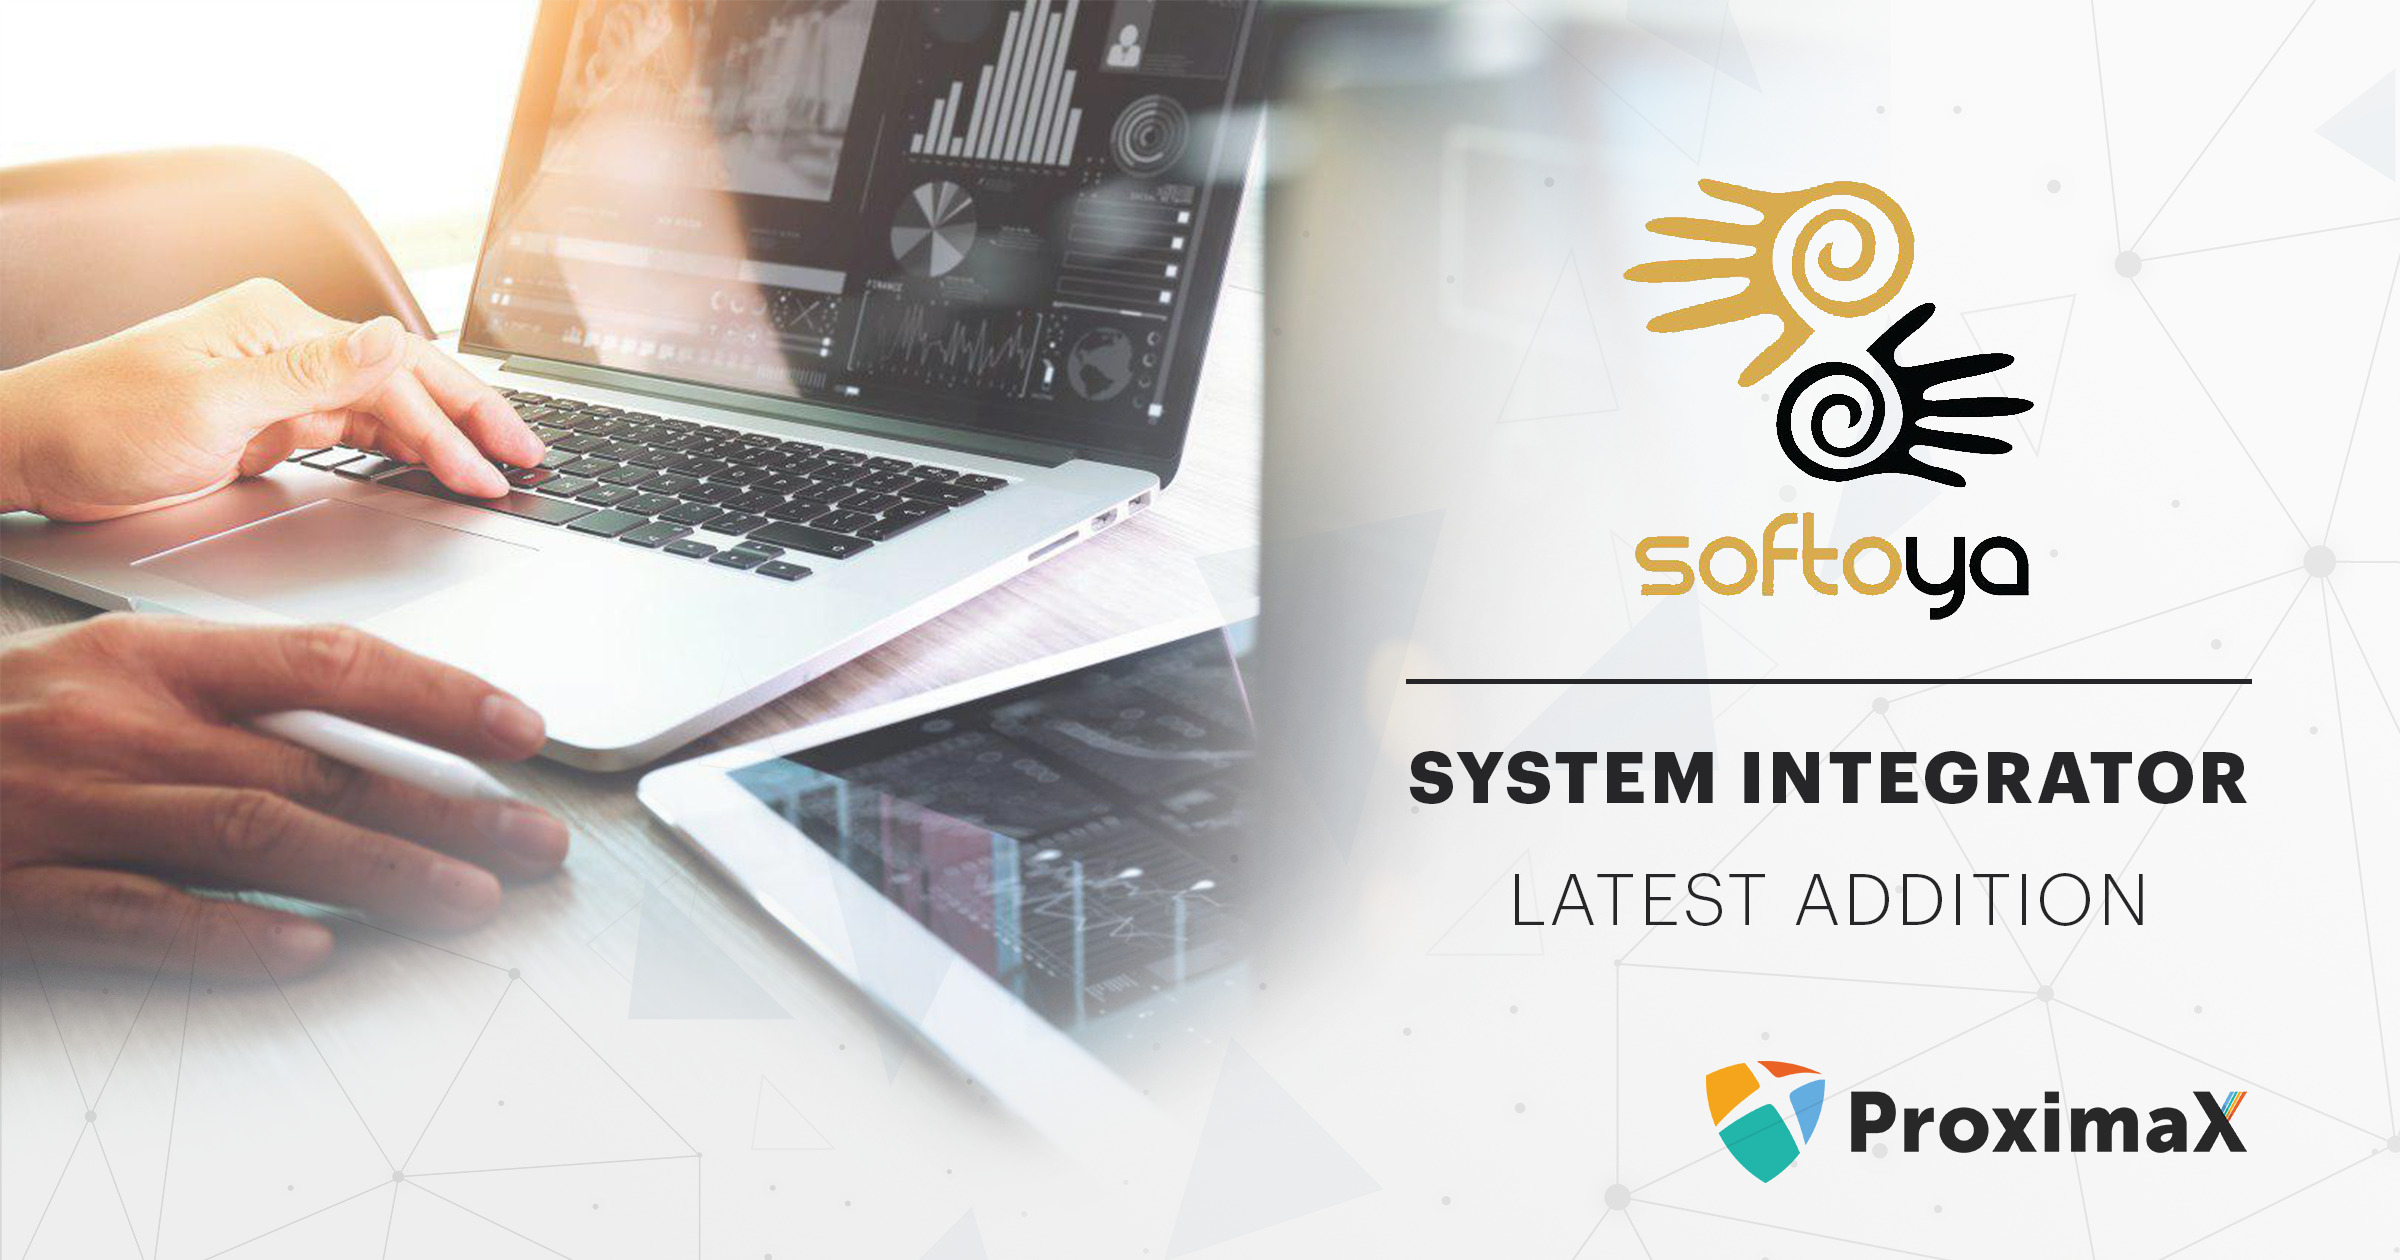 Softoya International joins ProximaX as system integrator